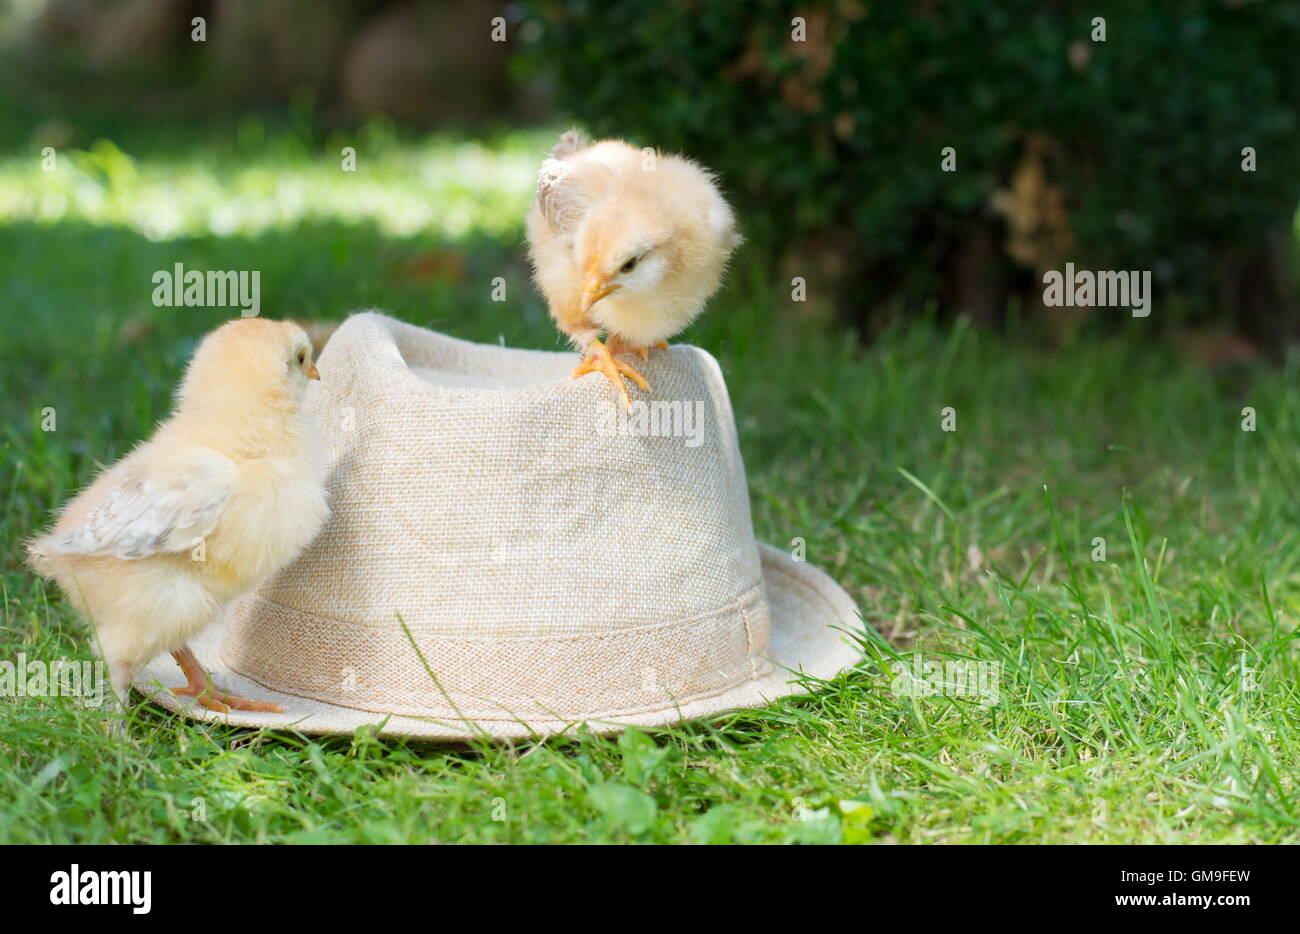 Baby chickens standing on a straw hat - Stock Image